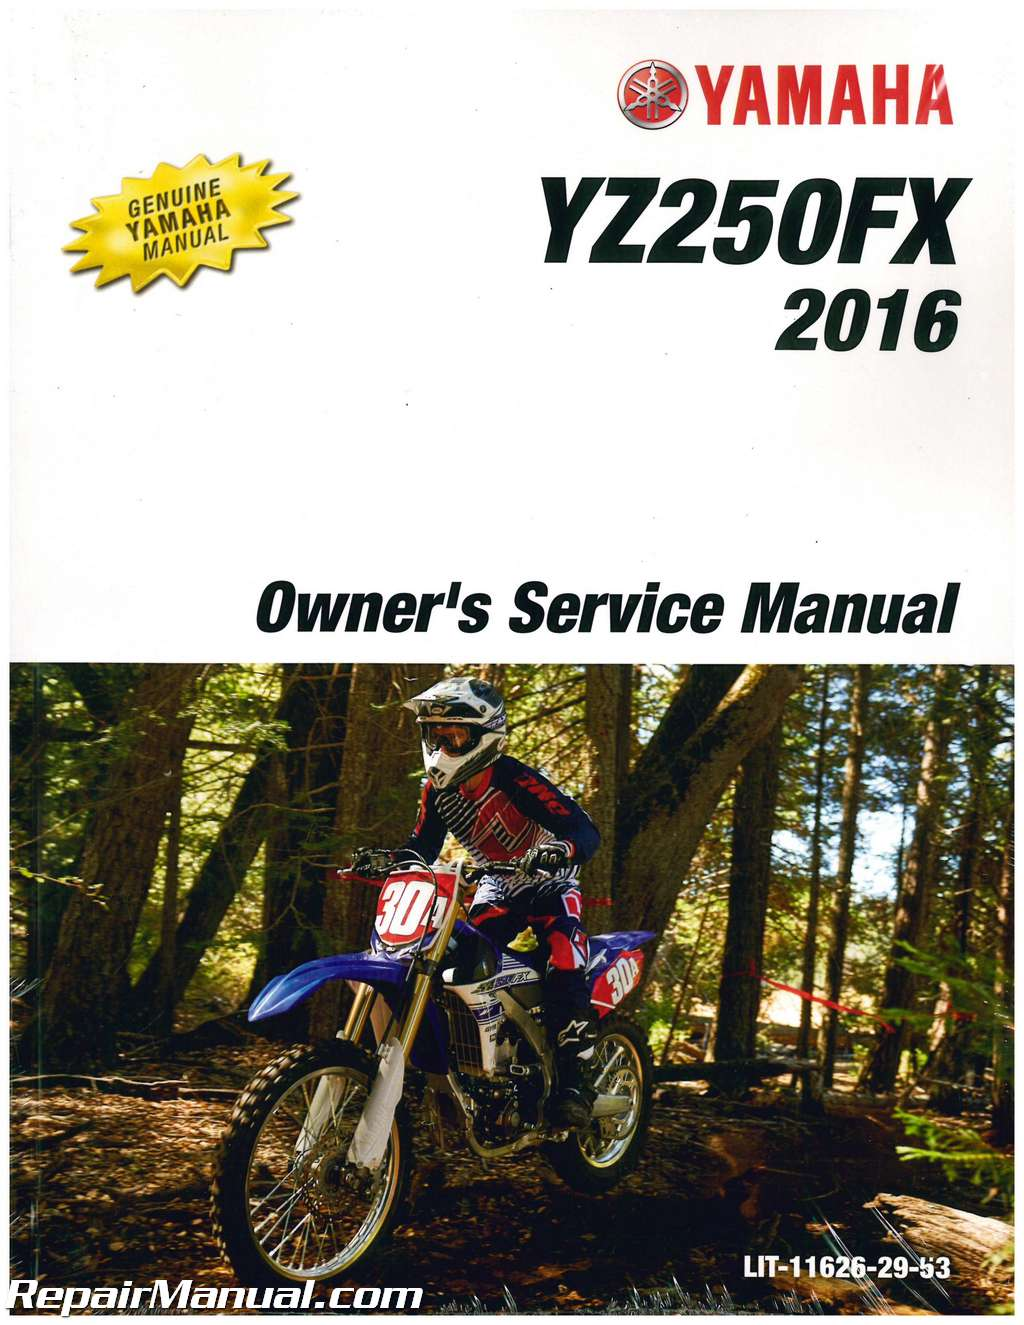 2016 Yamaha YZ250FX Motorcycle Owners Service Manual